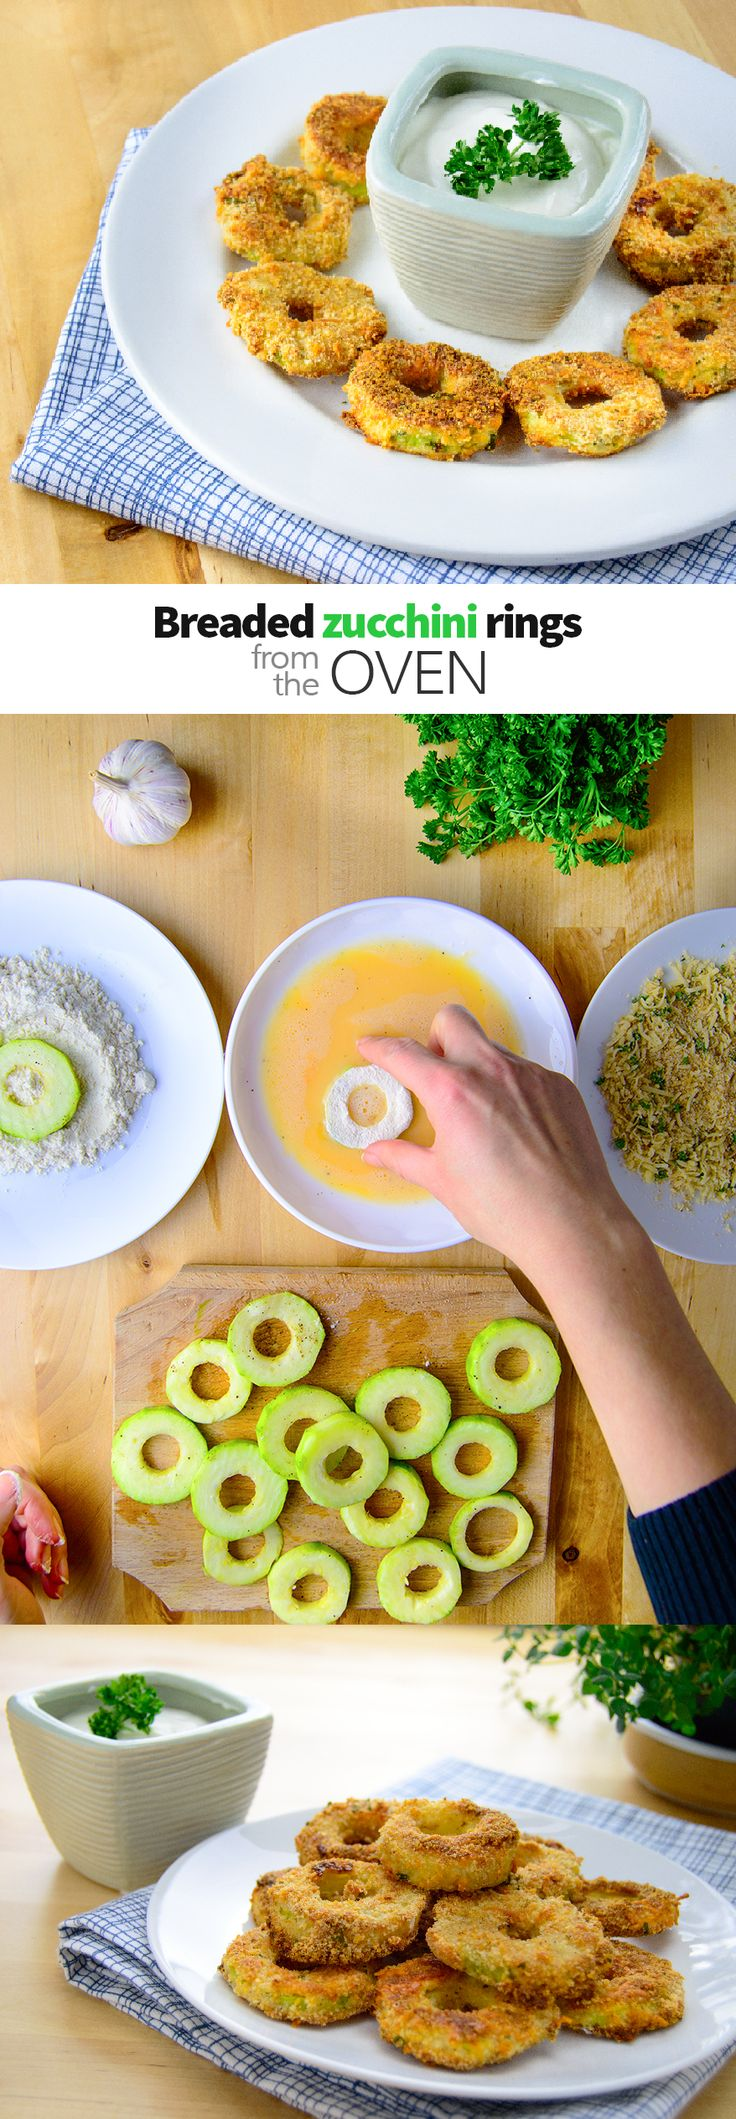 Breaded zucchini rings form the oven - crispy zucchini rings baked in the oven